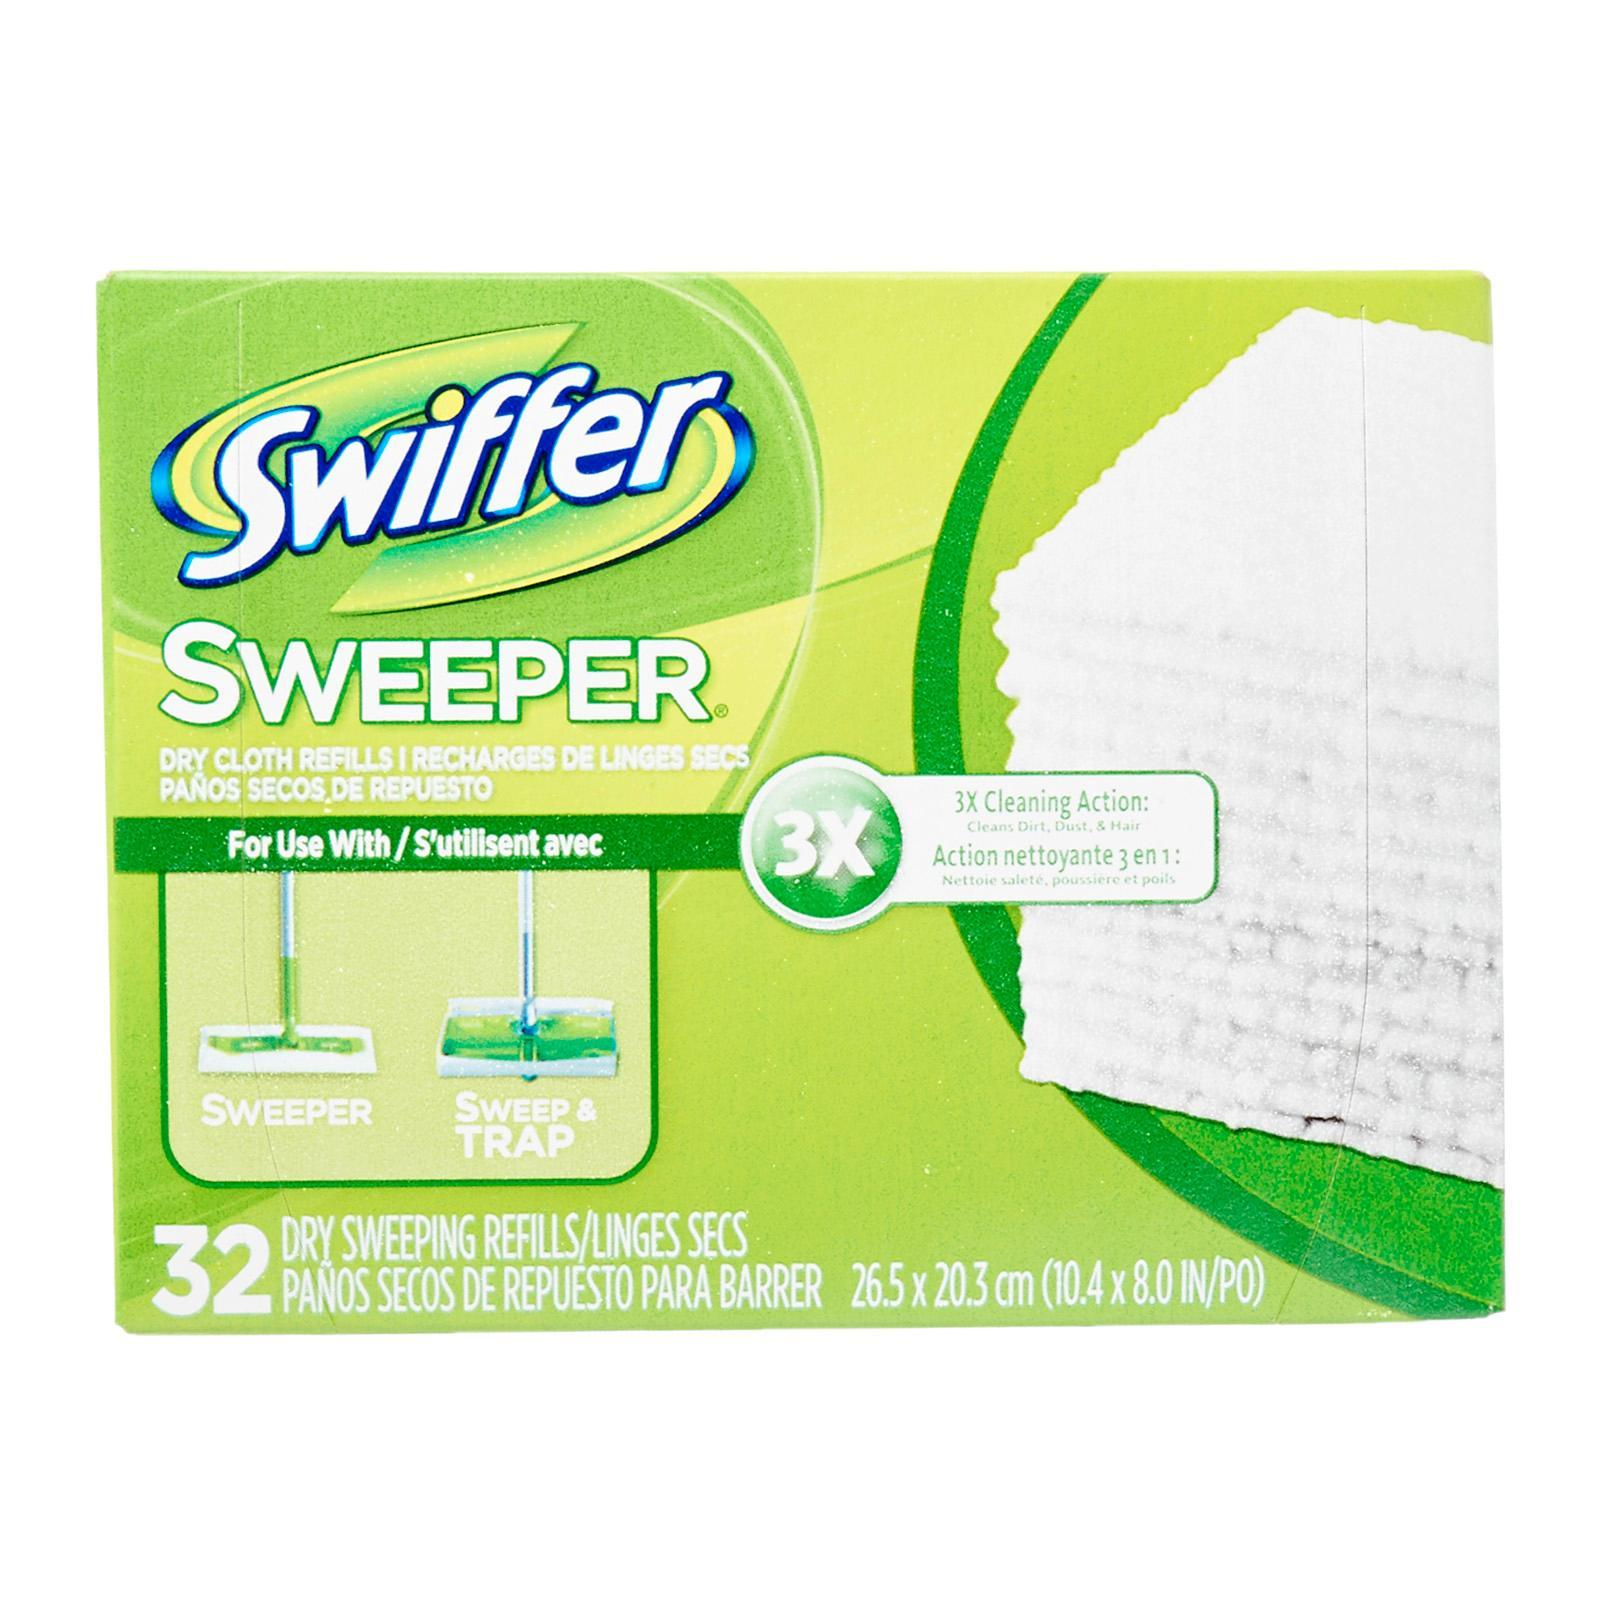 Swiffer Sweeper Dry Sweeping Cloth Refill - Unscented